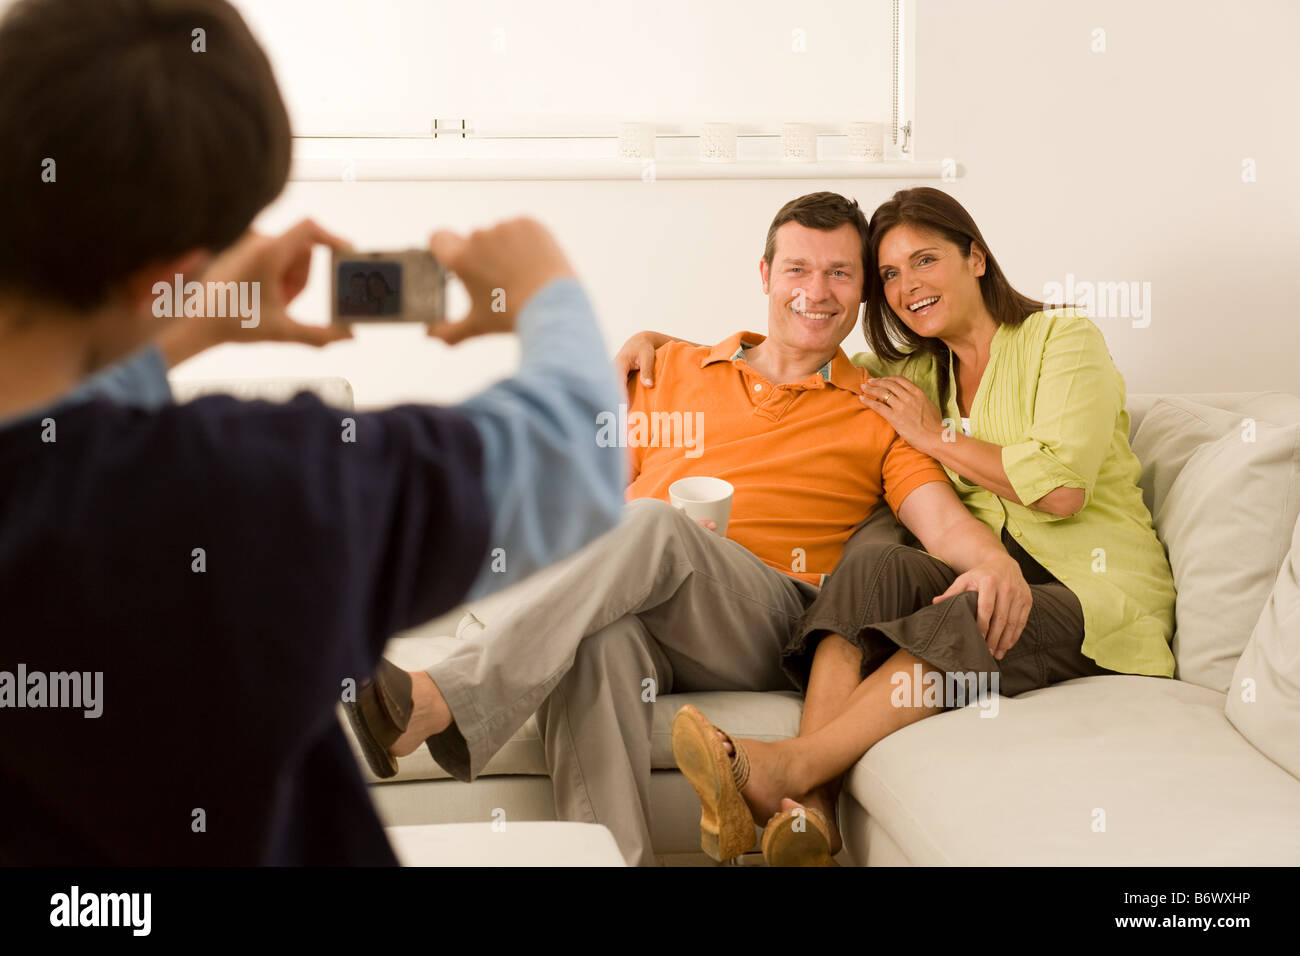 Boy taking picture of parents - Stock Image